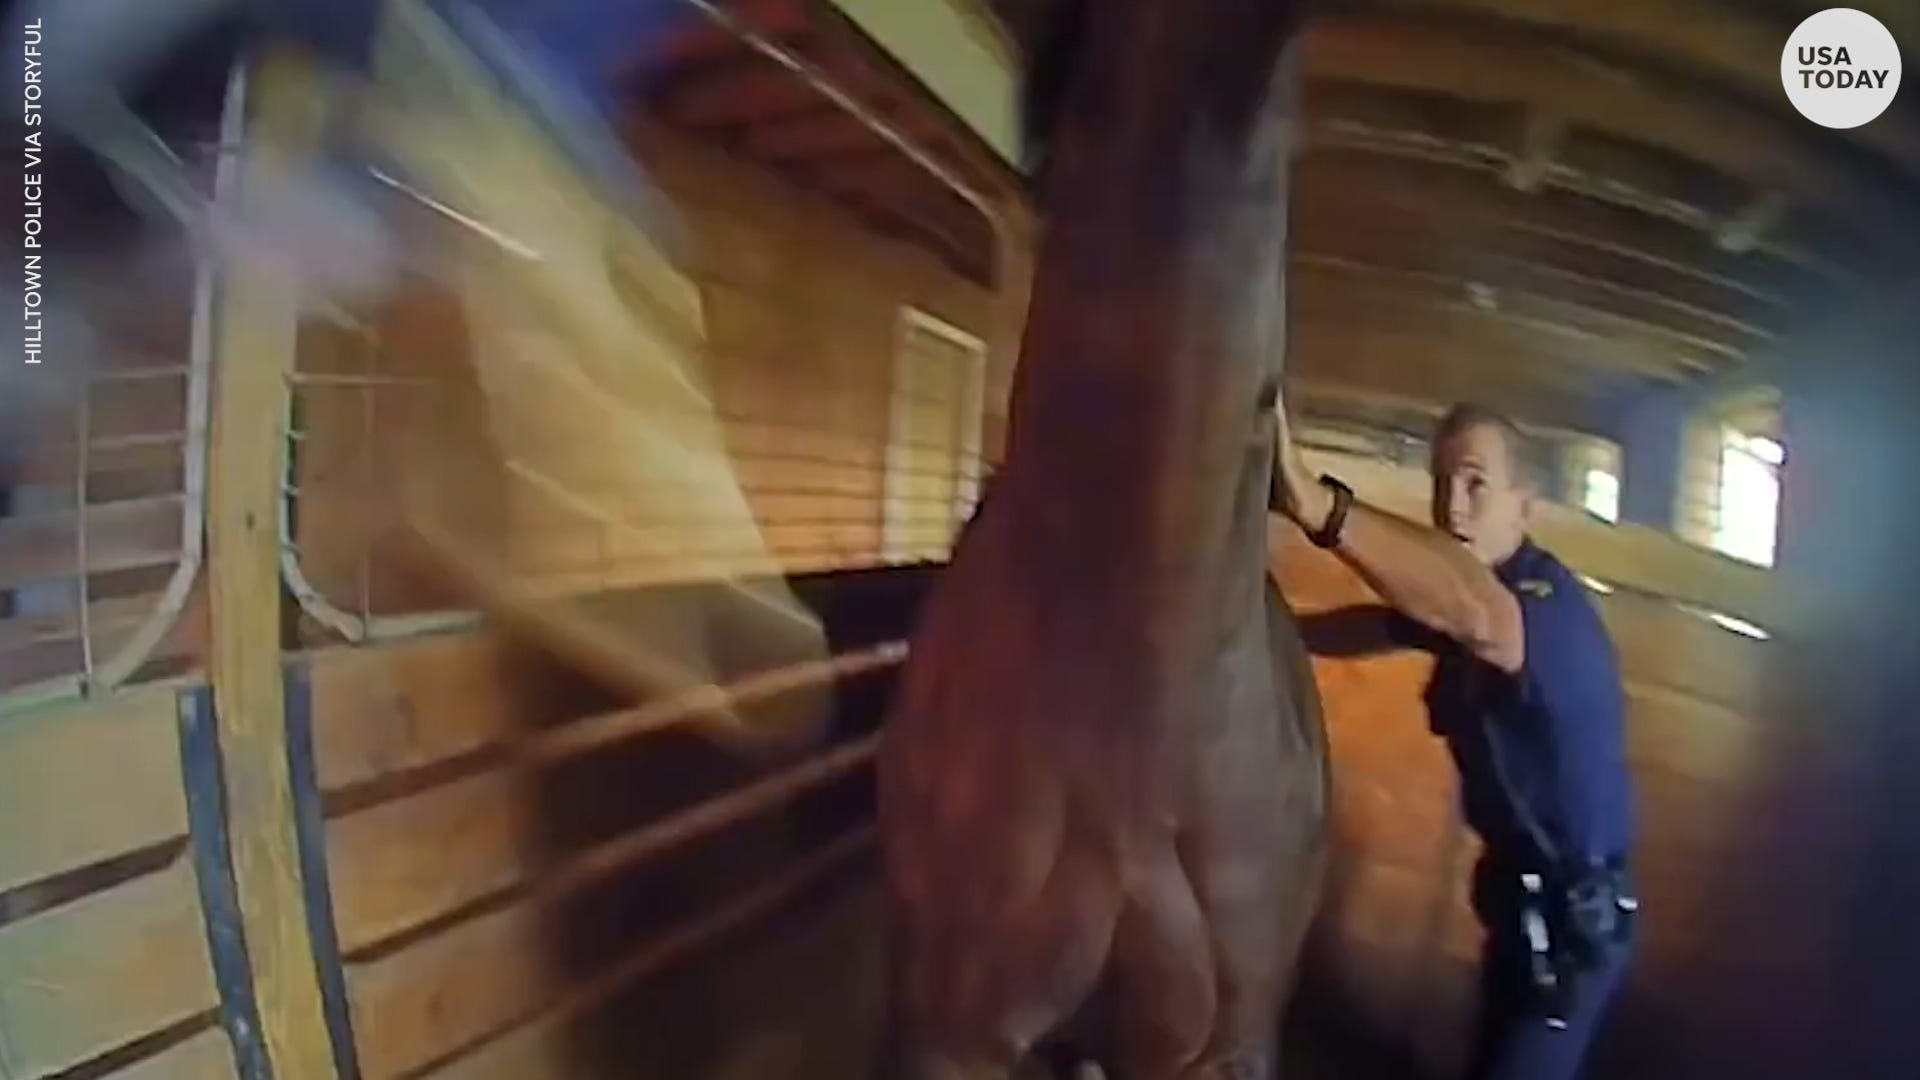 Two police officers help rescue horse trapped in a barn fire in Pennsylvania